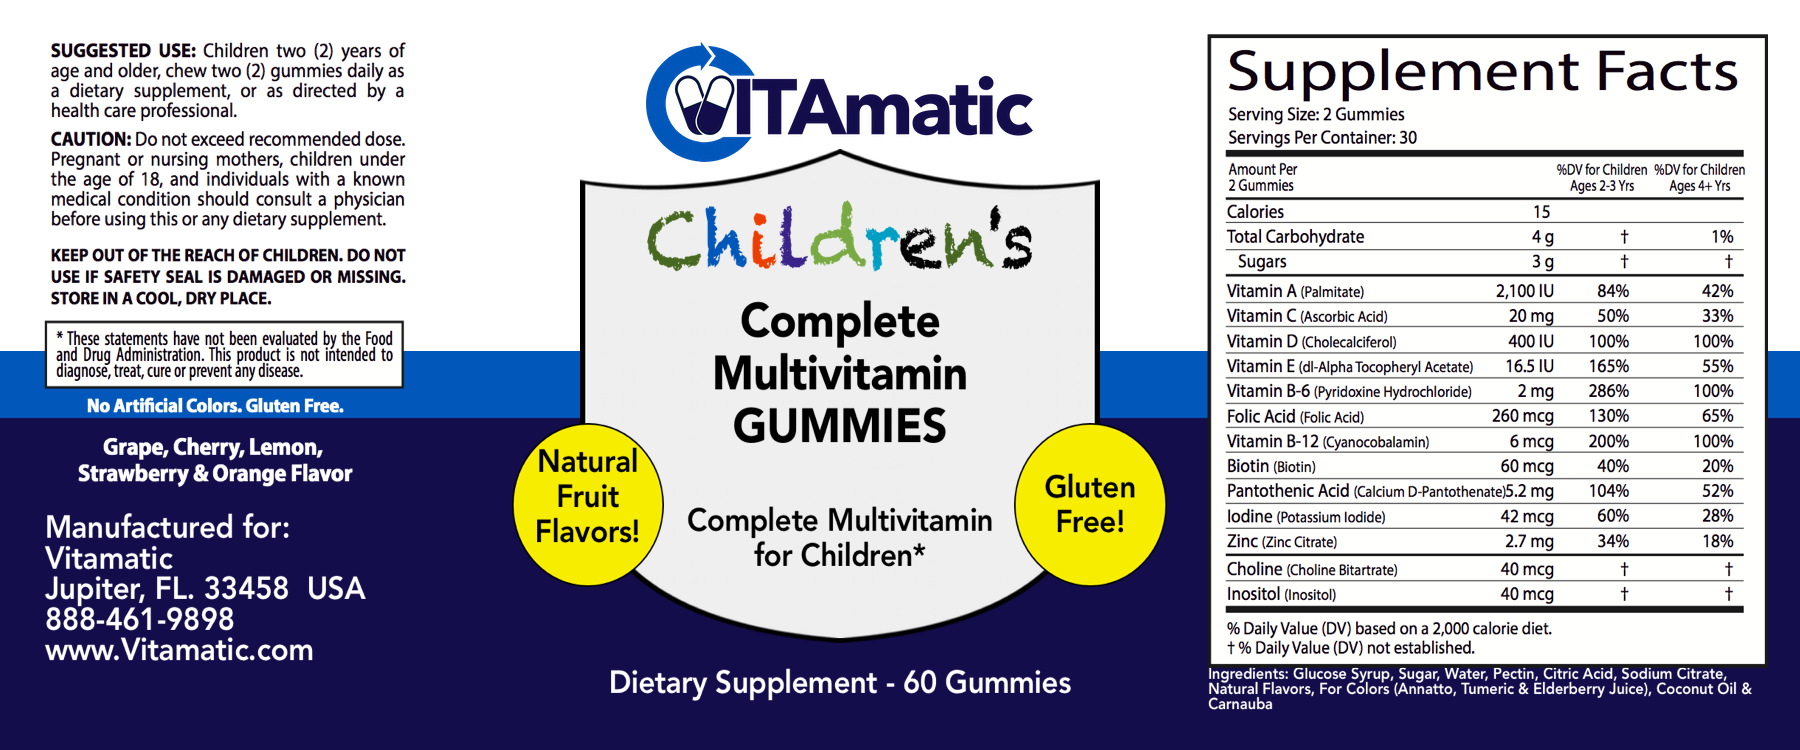 vitamatic childrens multivitamin gummy label